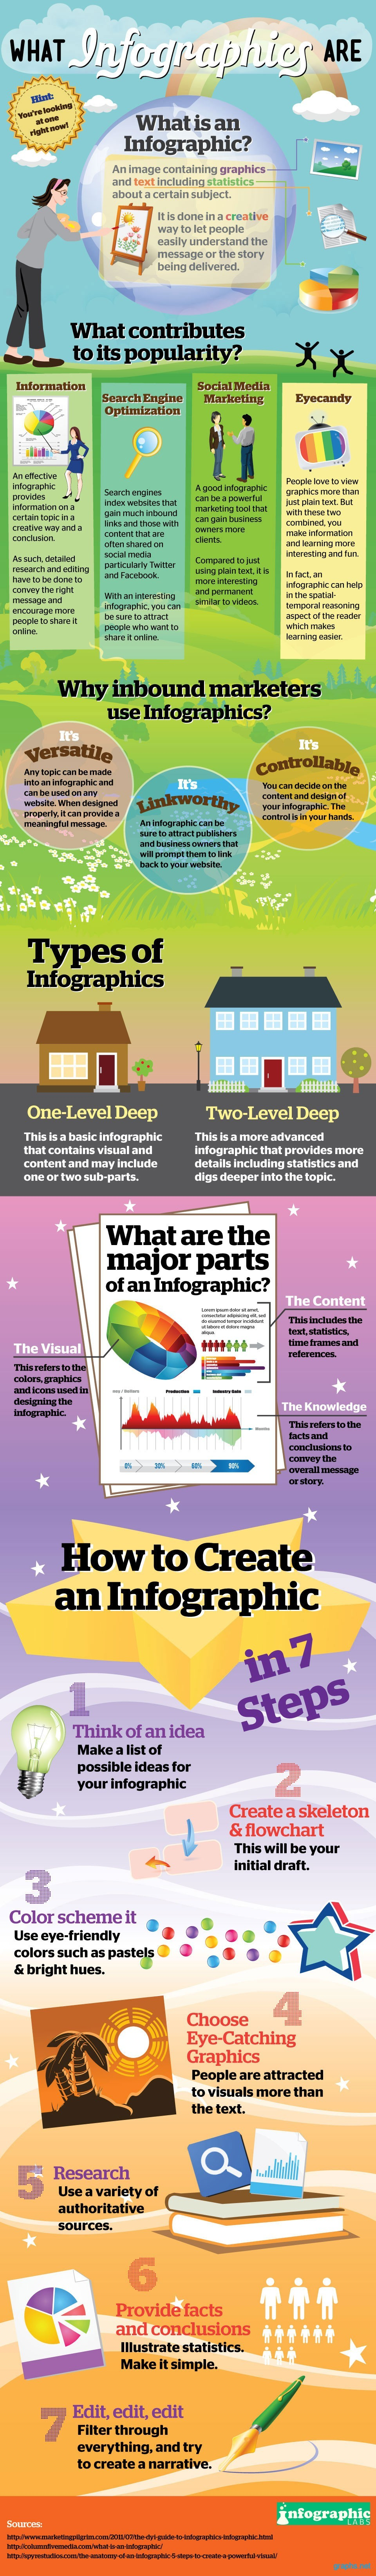 How To make Your Own Infographic In 7 Steps